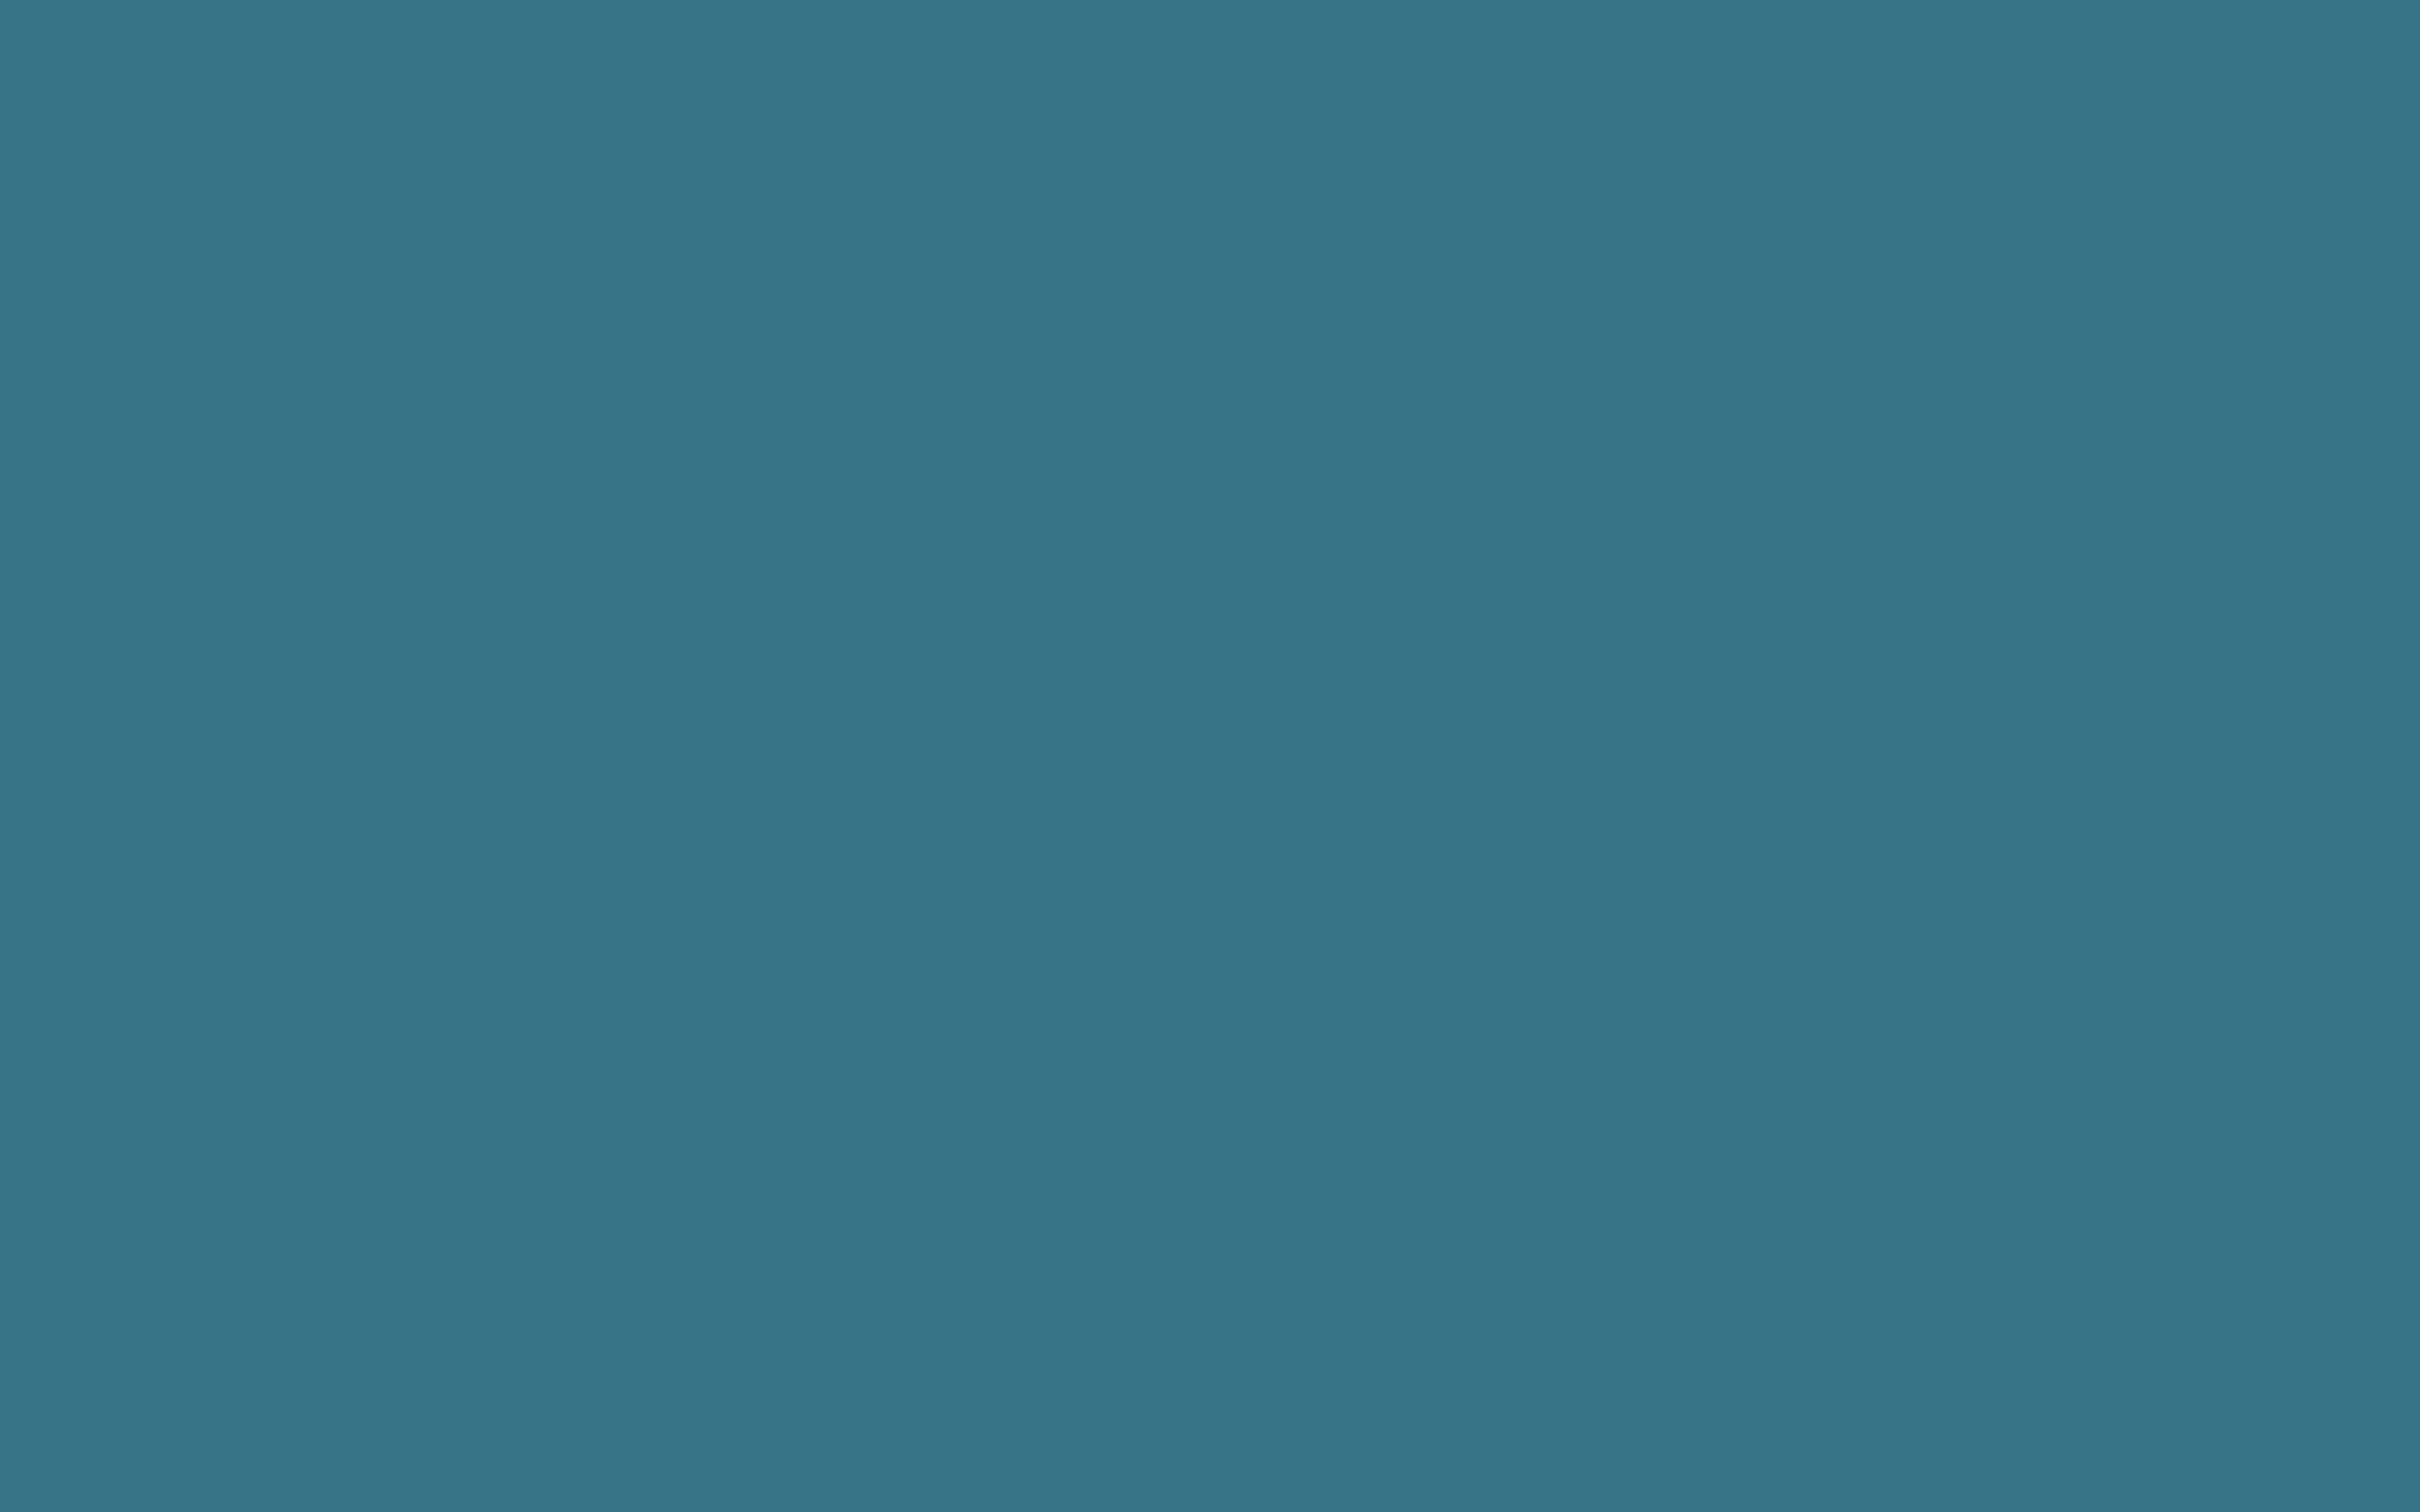 2560x1600 resolution Teal Blue solid color background view and 2560x1600